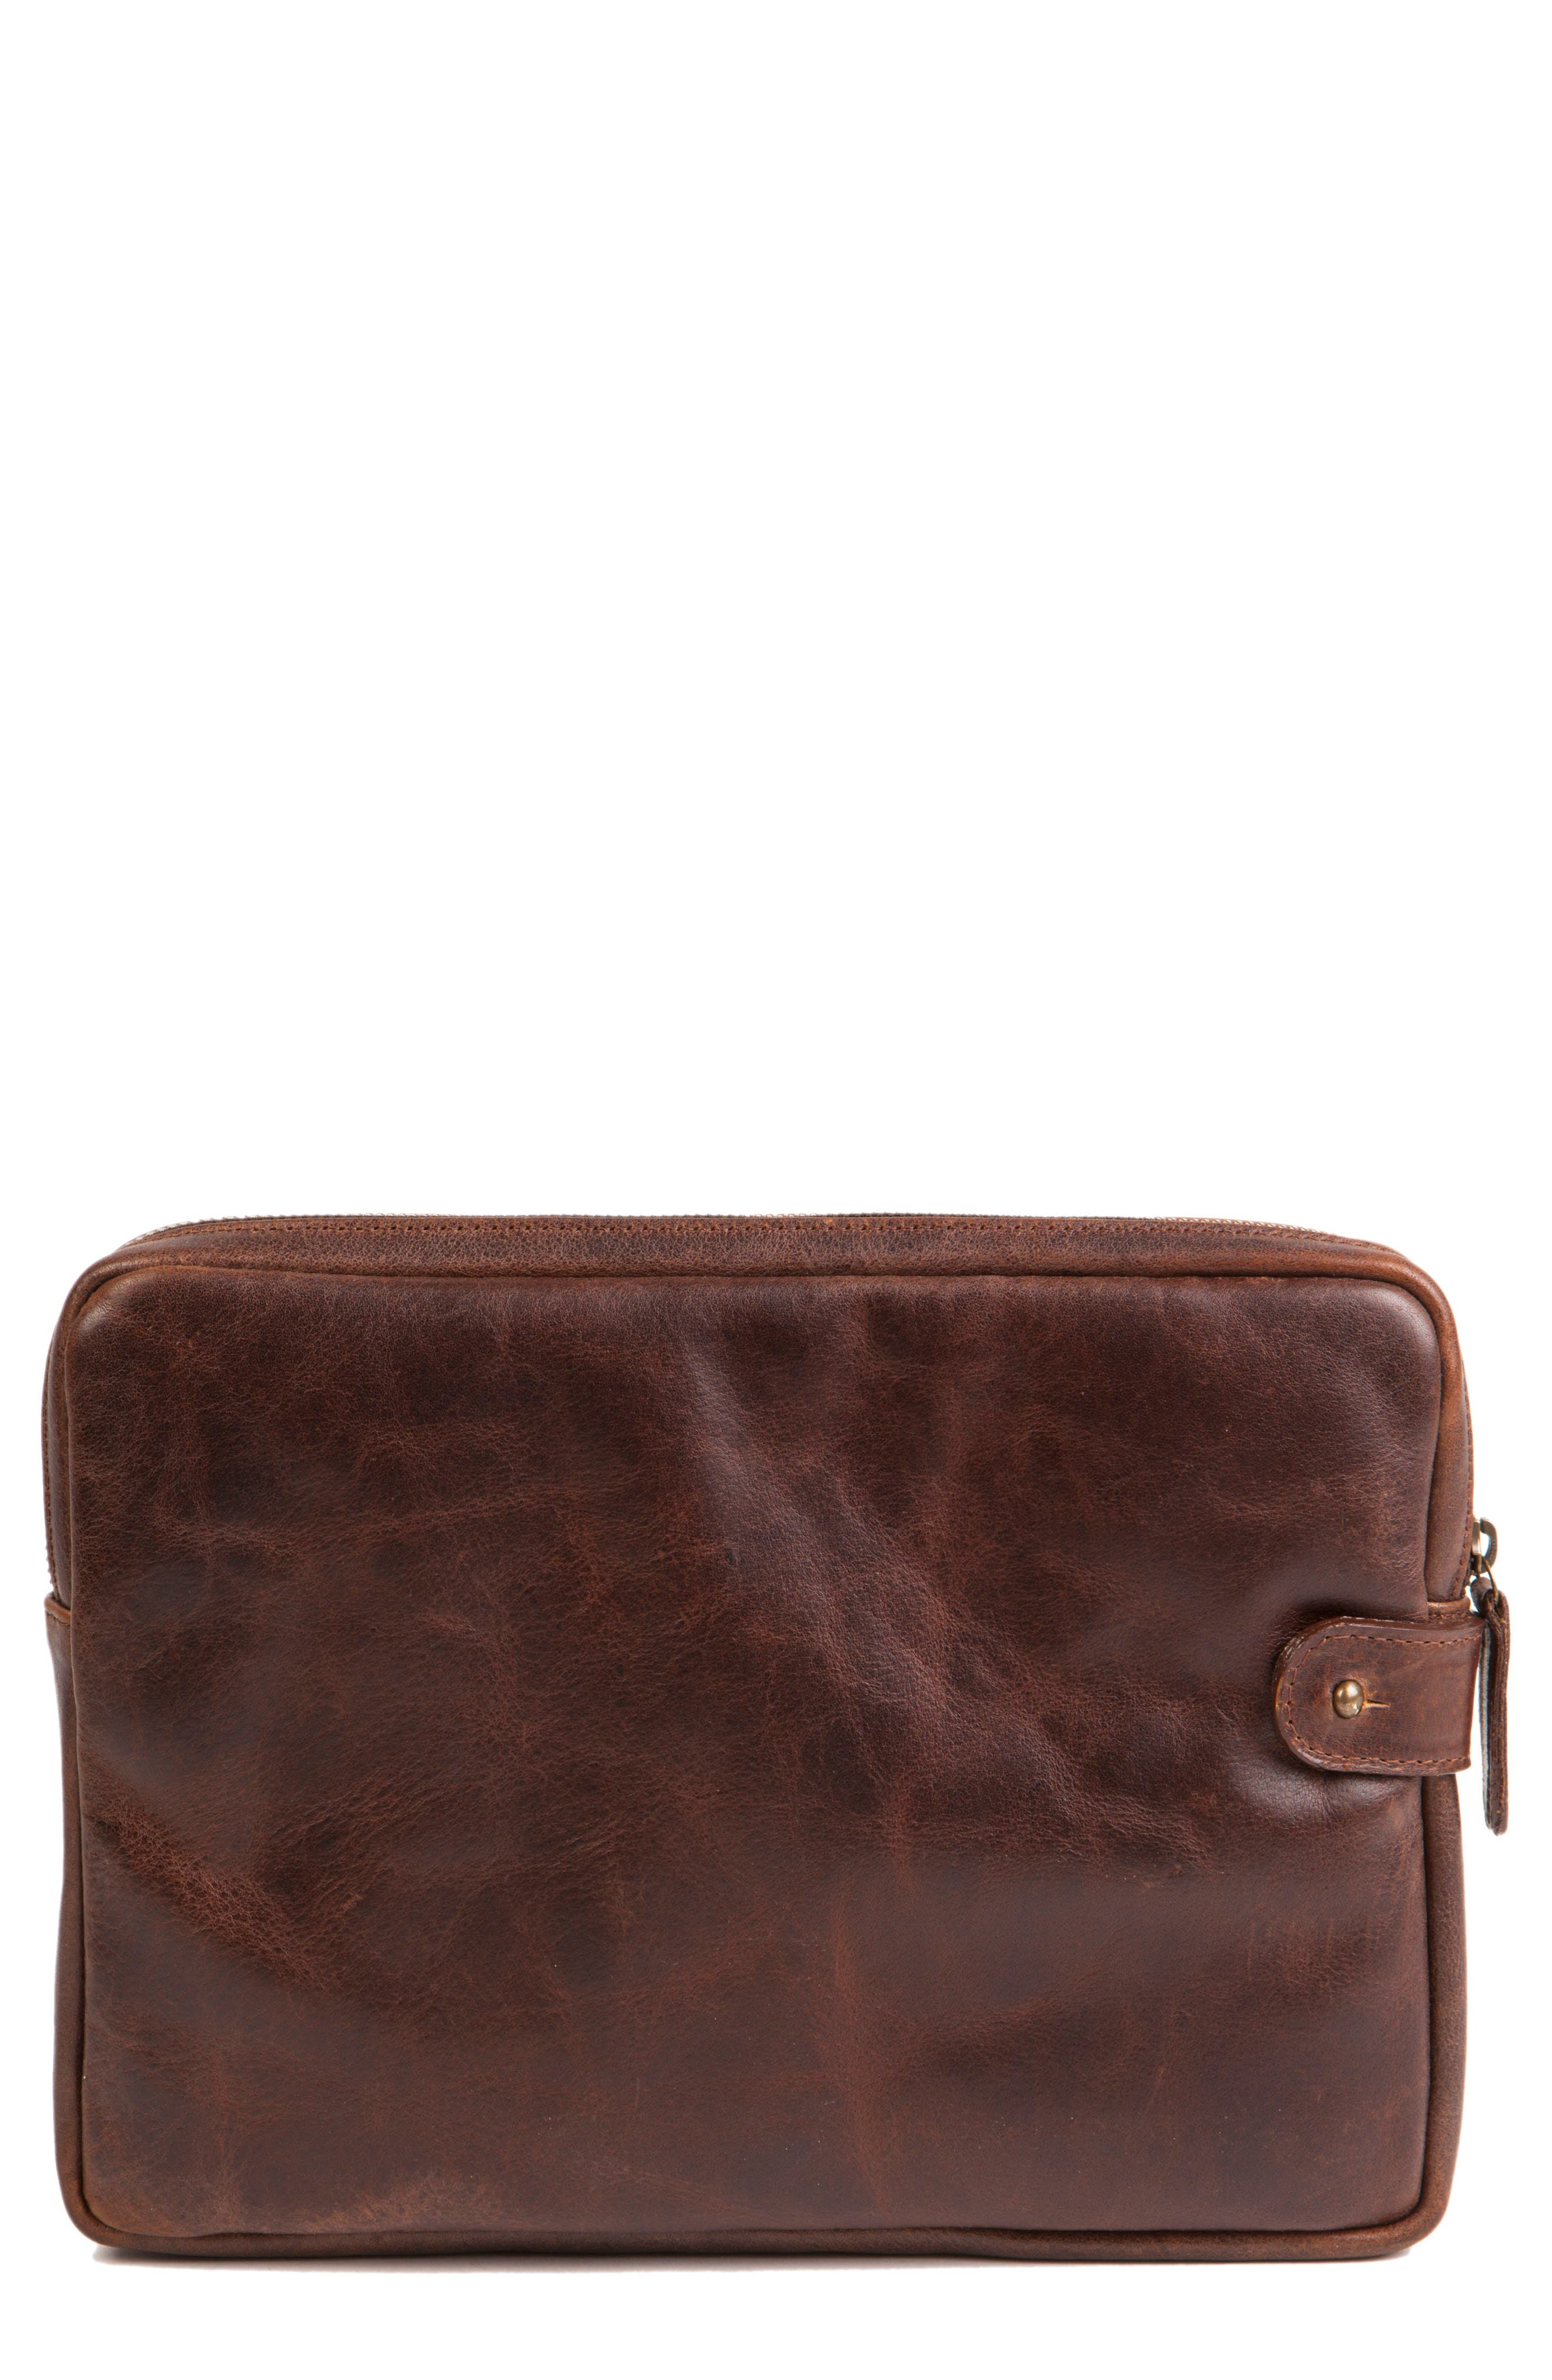 Leather Tablet Sleeve,                         Main,                         color, Titan Milled Brown